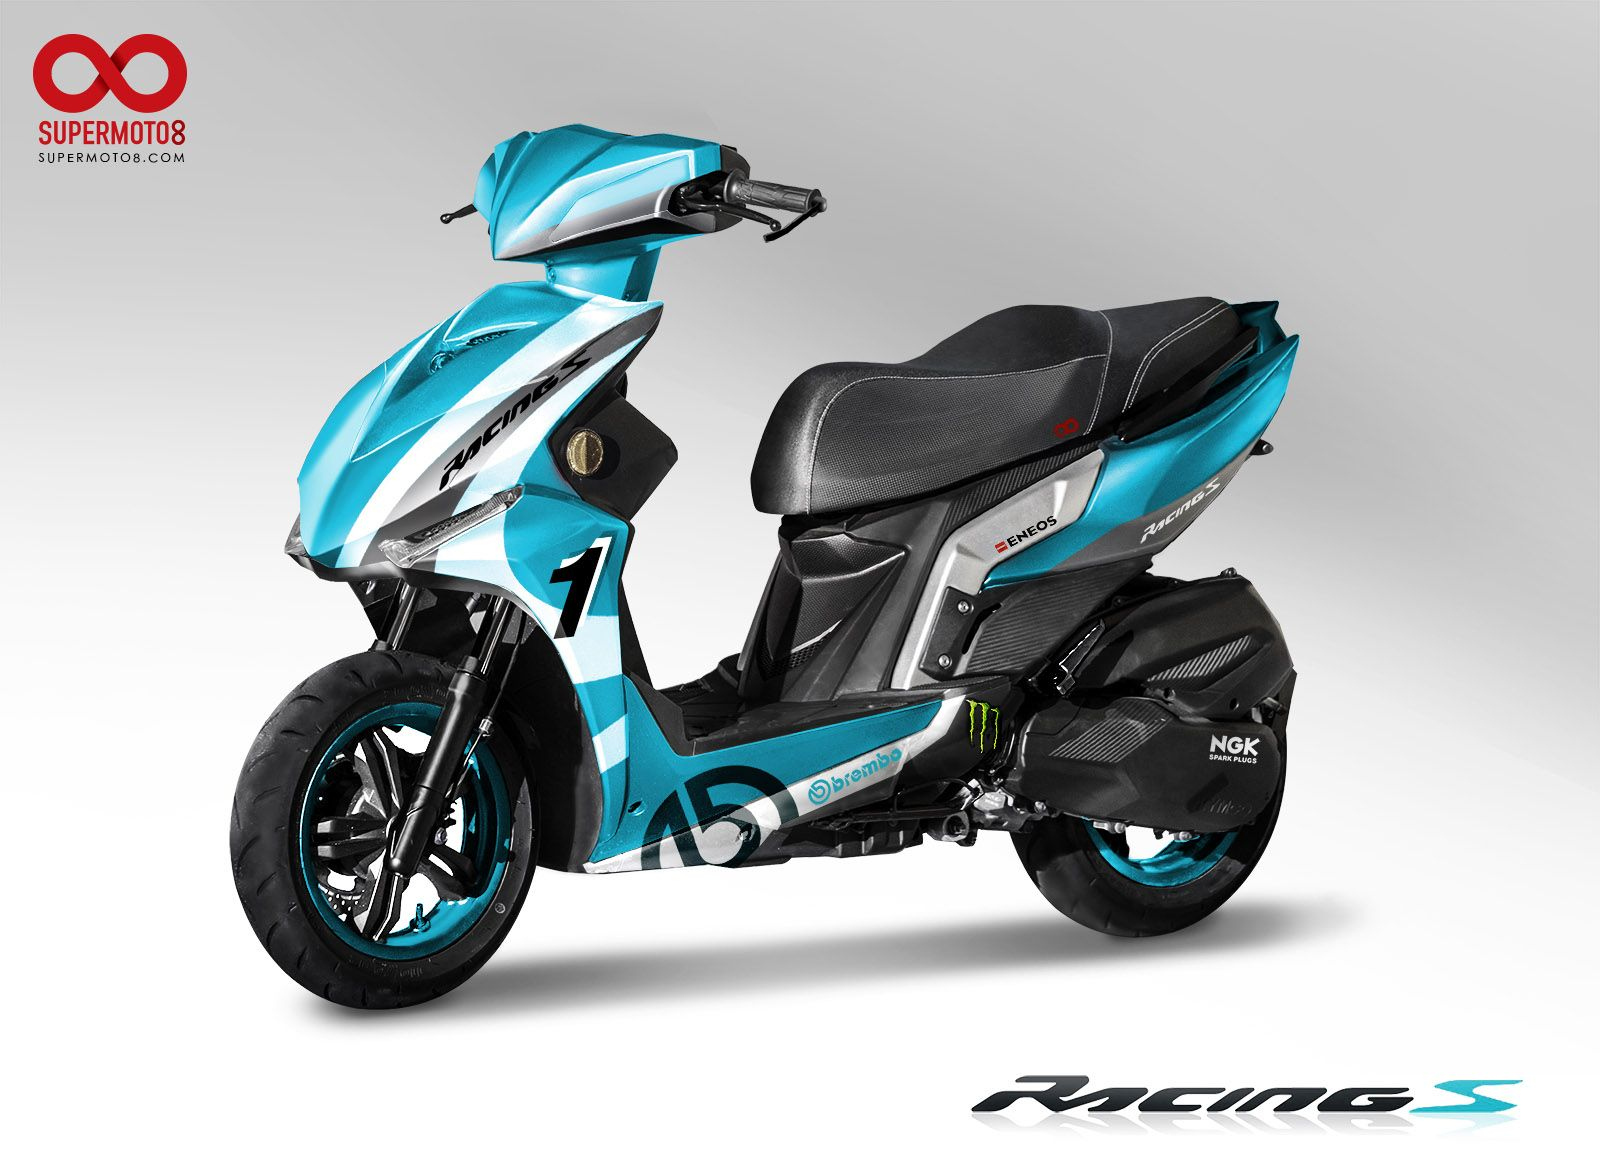 69 harga kredit motor yamaha nmax 150cc modifikasi yamah nmax. Black Bedroom Furniture Sets. Home Design Ideas